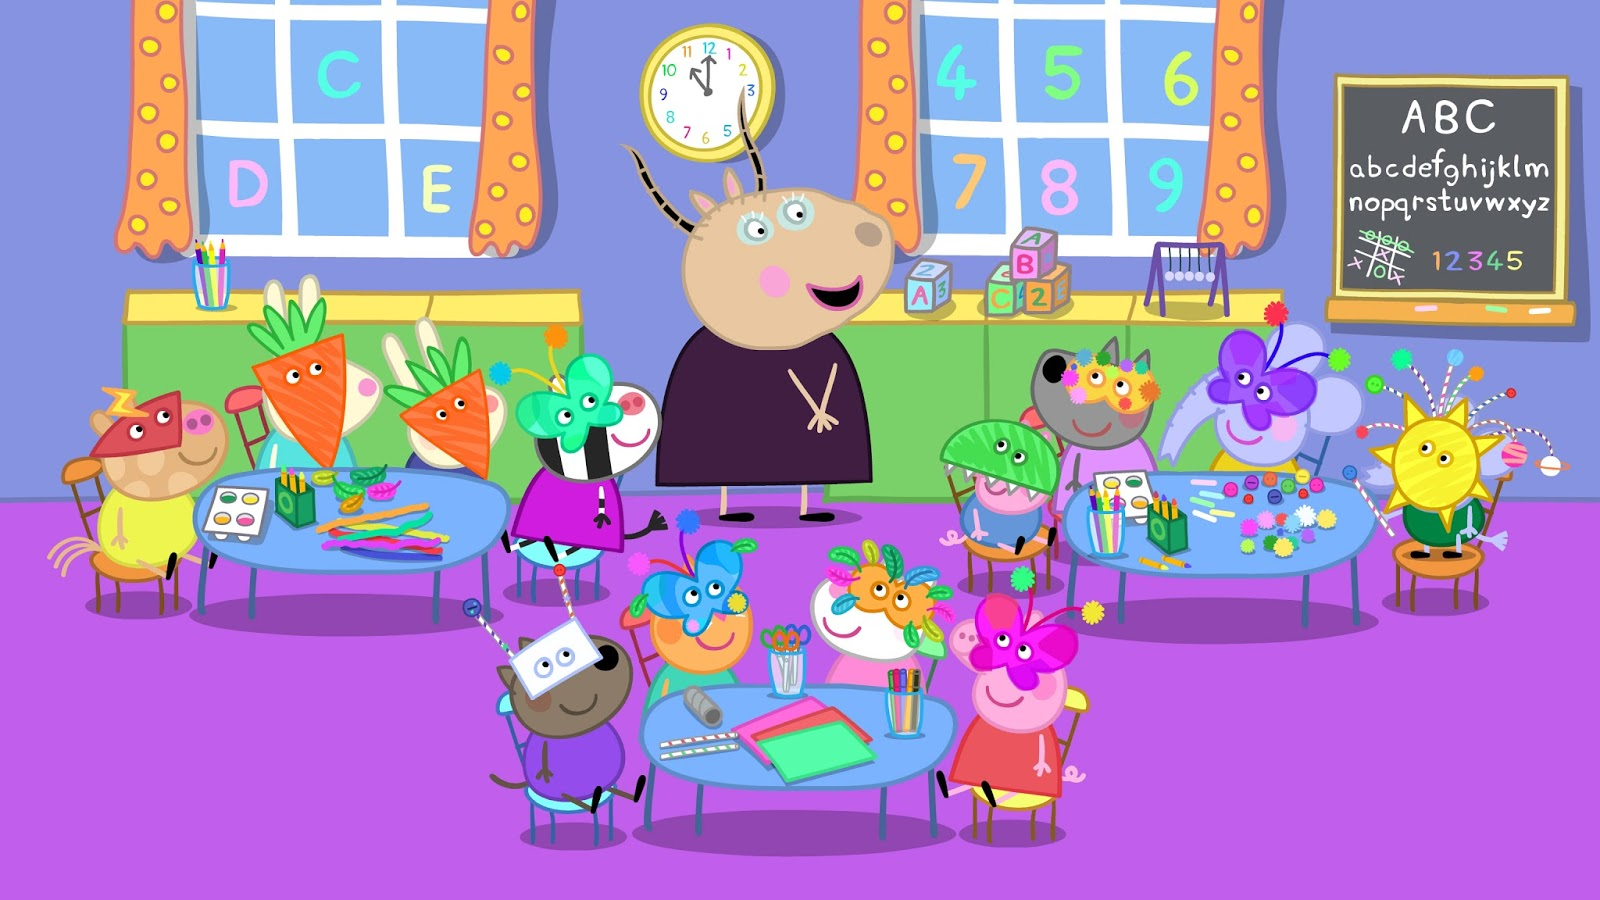 Nickalive Nickelodeon Usa To Premiere New Episodes Of Peppa Pig